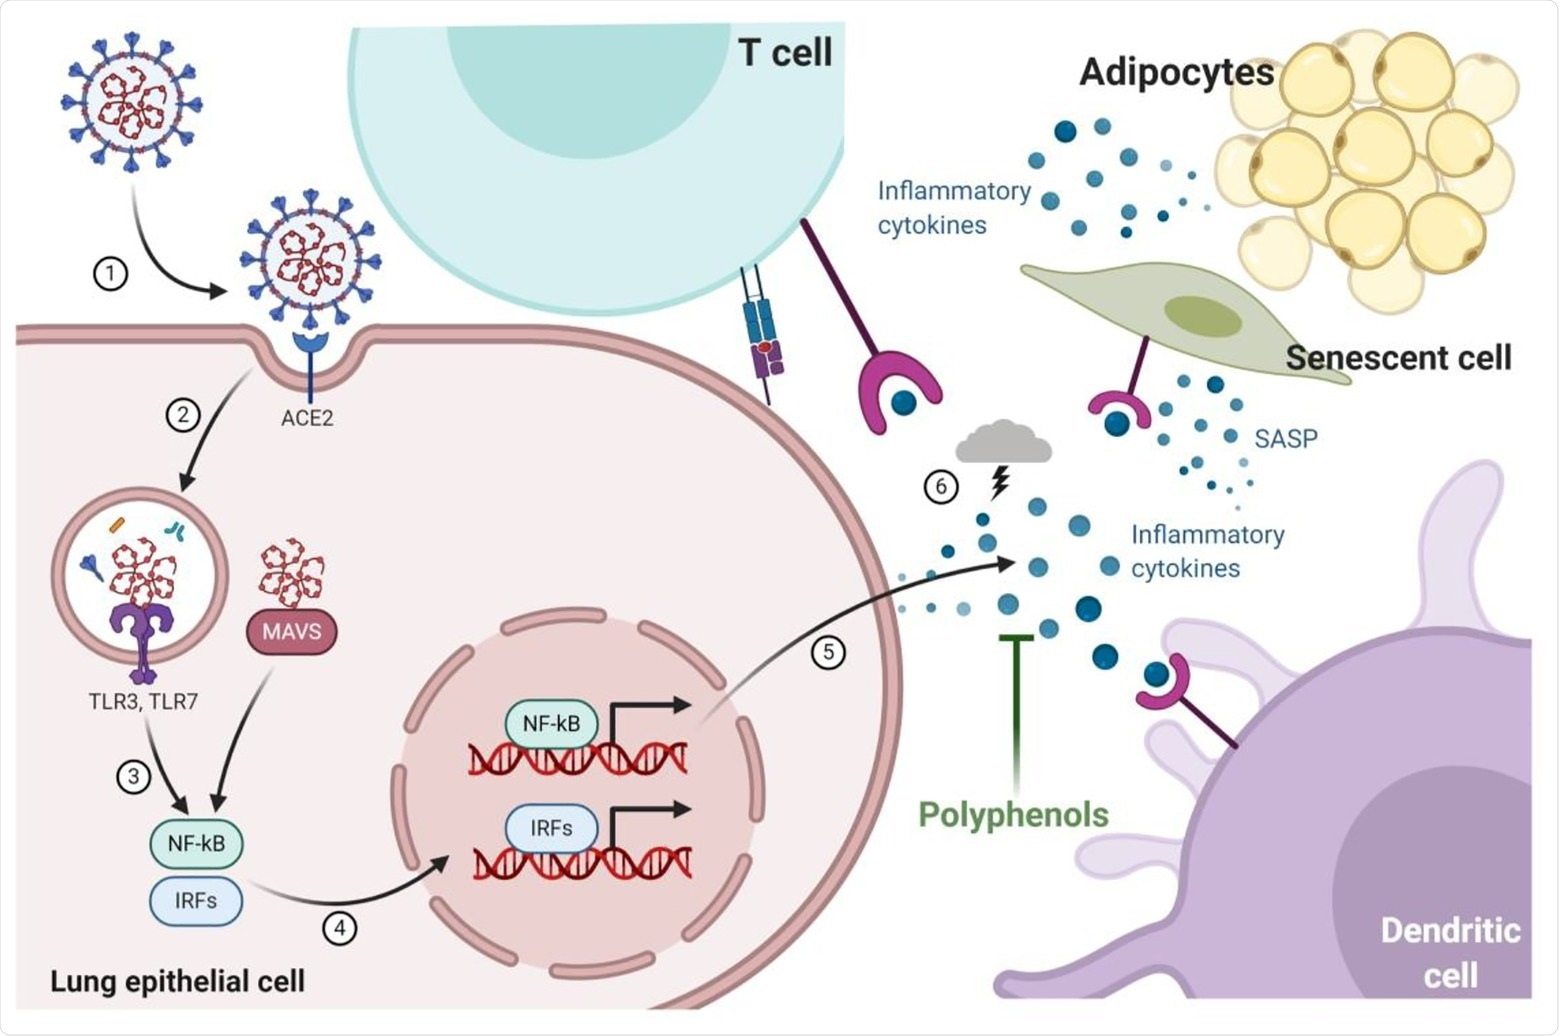 Infection of pulmonary epithelial cells occurs through the interaction of the spike glycoprotein envelope (S-protein) with the angiotensin I converting enzyme (ACE)-2 receptor that allows viral replication and triggers mechanisms to combat infection by the host cells thought toll-like receptors (TLRs) and mitochondrial antiviral-signaling protein (MAVS). Cytokines pro-inflammatory are produced by nuclear factor kappa -B (NF-kB) and interferon-regulatory factors (IRFs) signaling pathways recruiting more immune cells (dendritic cell and T-cell) to lungs. Recruited immune cells increased cytokine production resulting in a cytokine storm that is associated with a worse prognosis of infected patients. During aging and obesity, the production of pro-inflammatory cytokines and the establishment of low-grade systemic inflammation are also observed. The expression of components of the renin-angiotensin-aldosterone system, such as ACE2, is also modified by aging and obesity, which could explain why elderly and obese patients are affected and headed the death statistics by COVID-19. Dietary bioactive substances such as polyphenols are able to block the production of cytokines by senescent cells (senescence-associated secretory phenotype; SASP) and adipocytes, as well as modify the ACE-1/ACE-2 ratio, which can potentially result in beneficial effects in COVID-19.